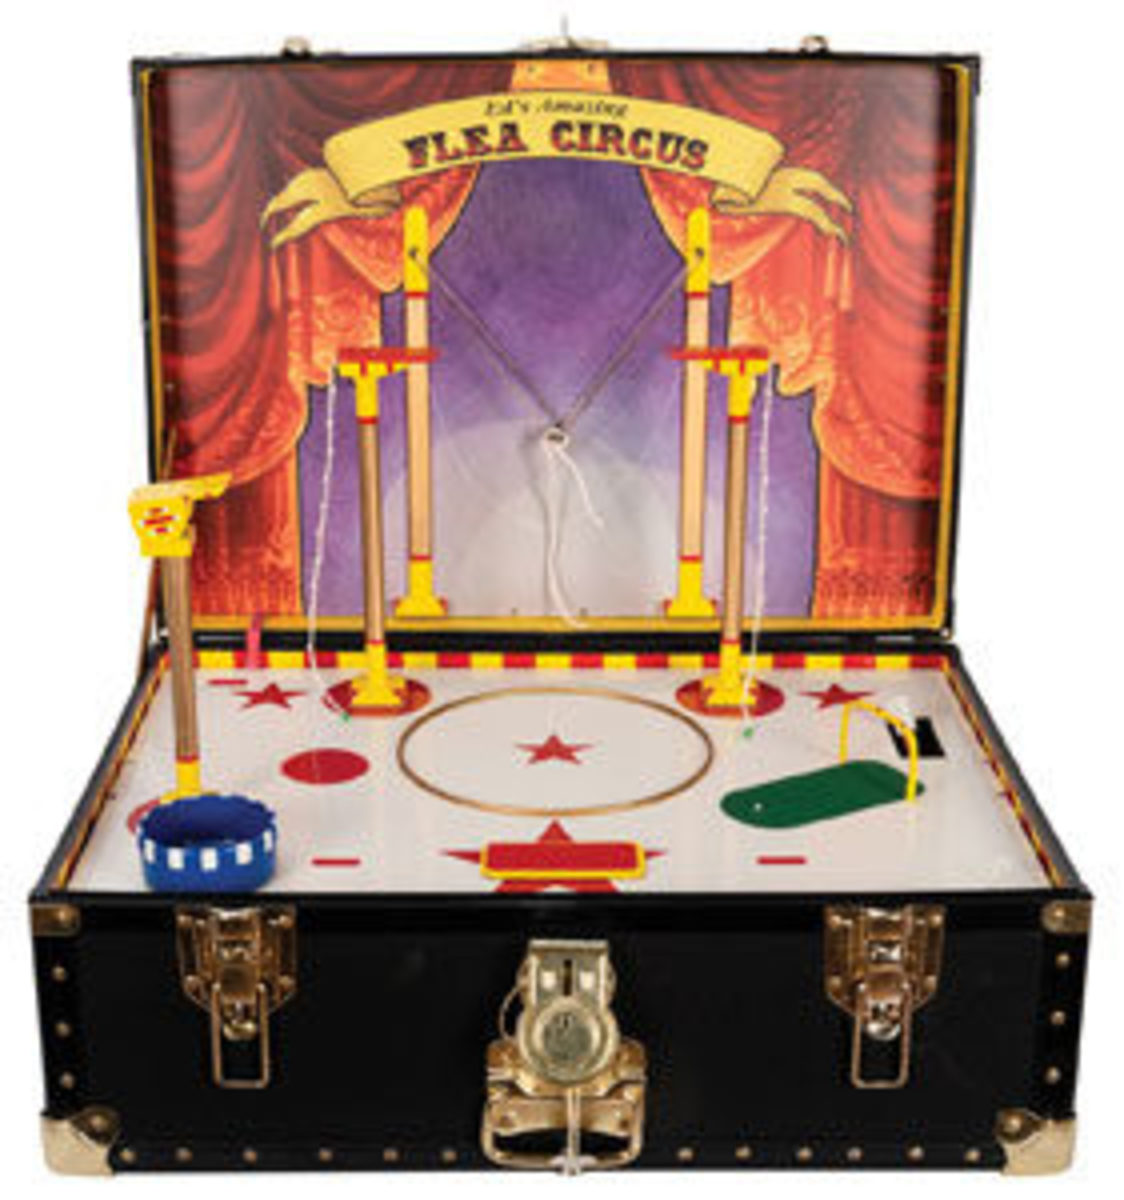 "Svensons electronic flea circus, all parts self-contained in a hard road case,including accessories that allow for the apparent performance of circus feats by fleas, 24"" x 17"" x 11""; estimate: $700-$900."